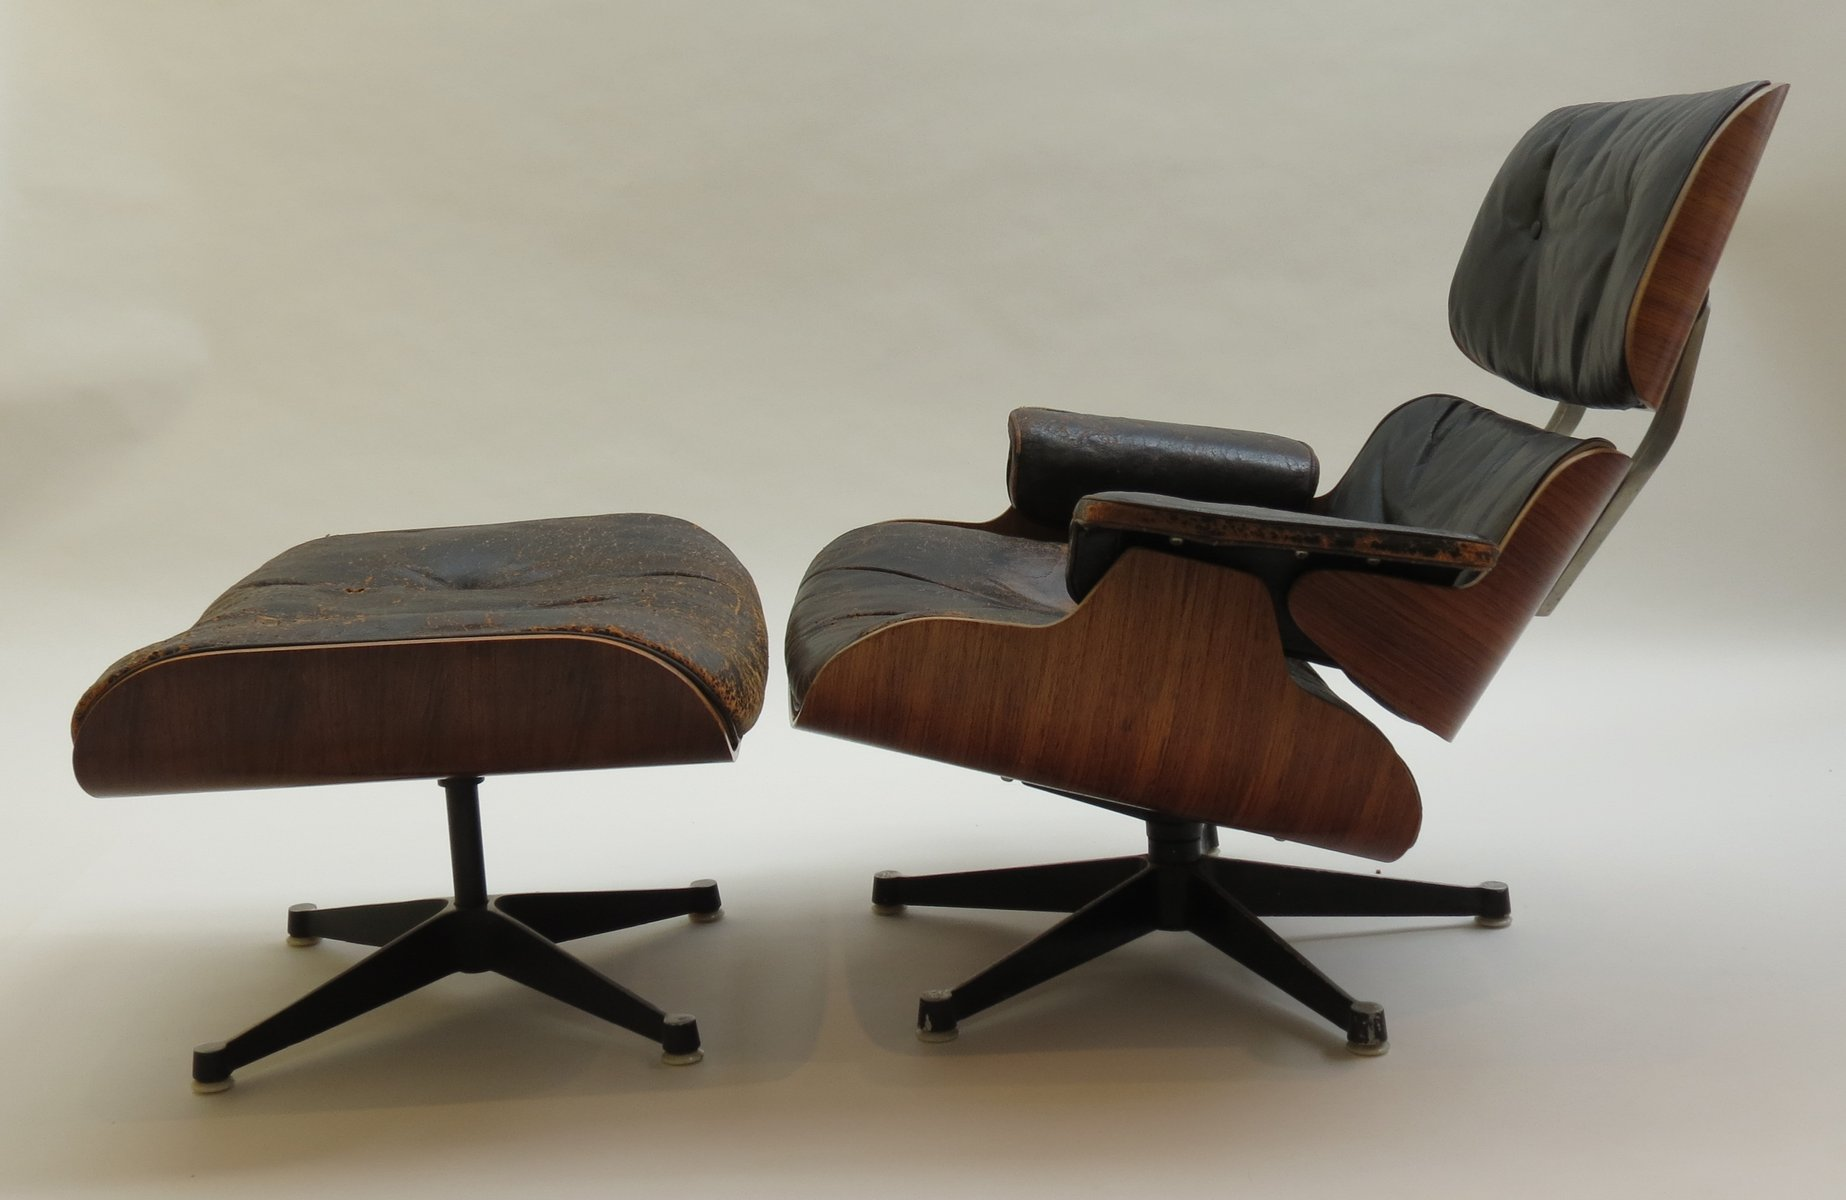 670 lounger 671 ottoman by charles and ray eames for hille 1959